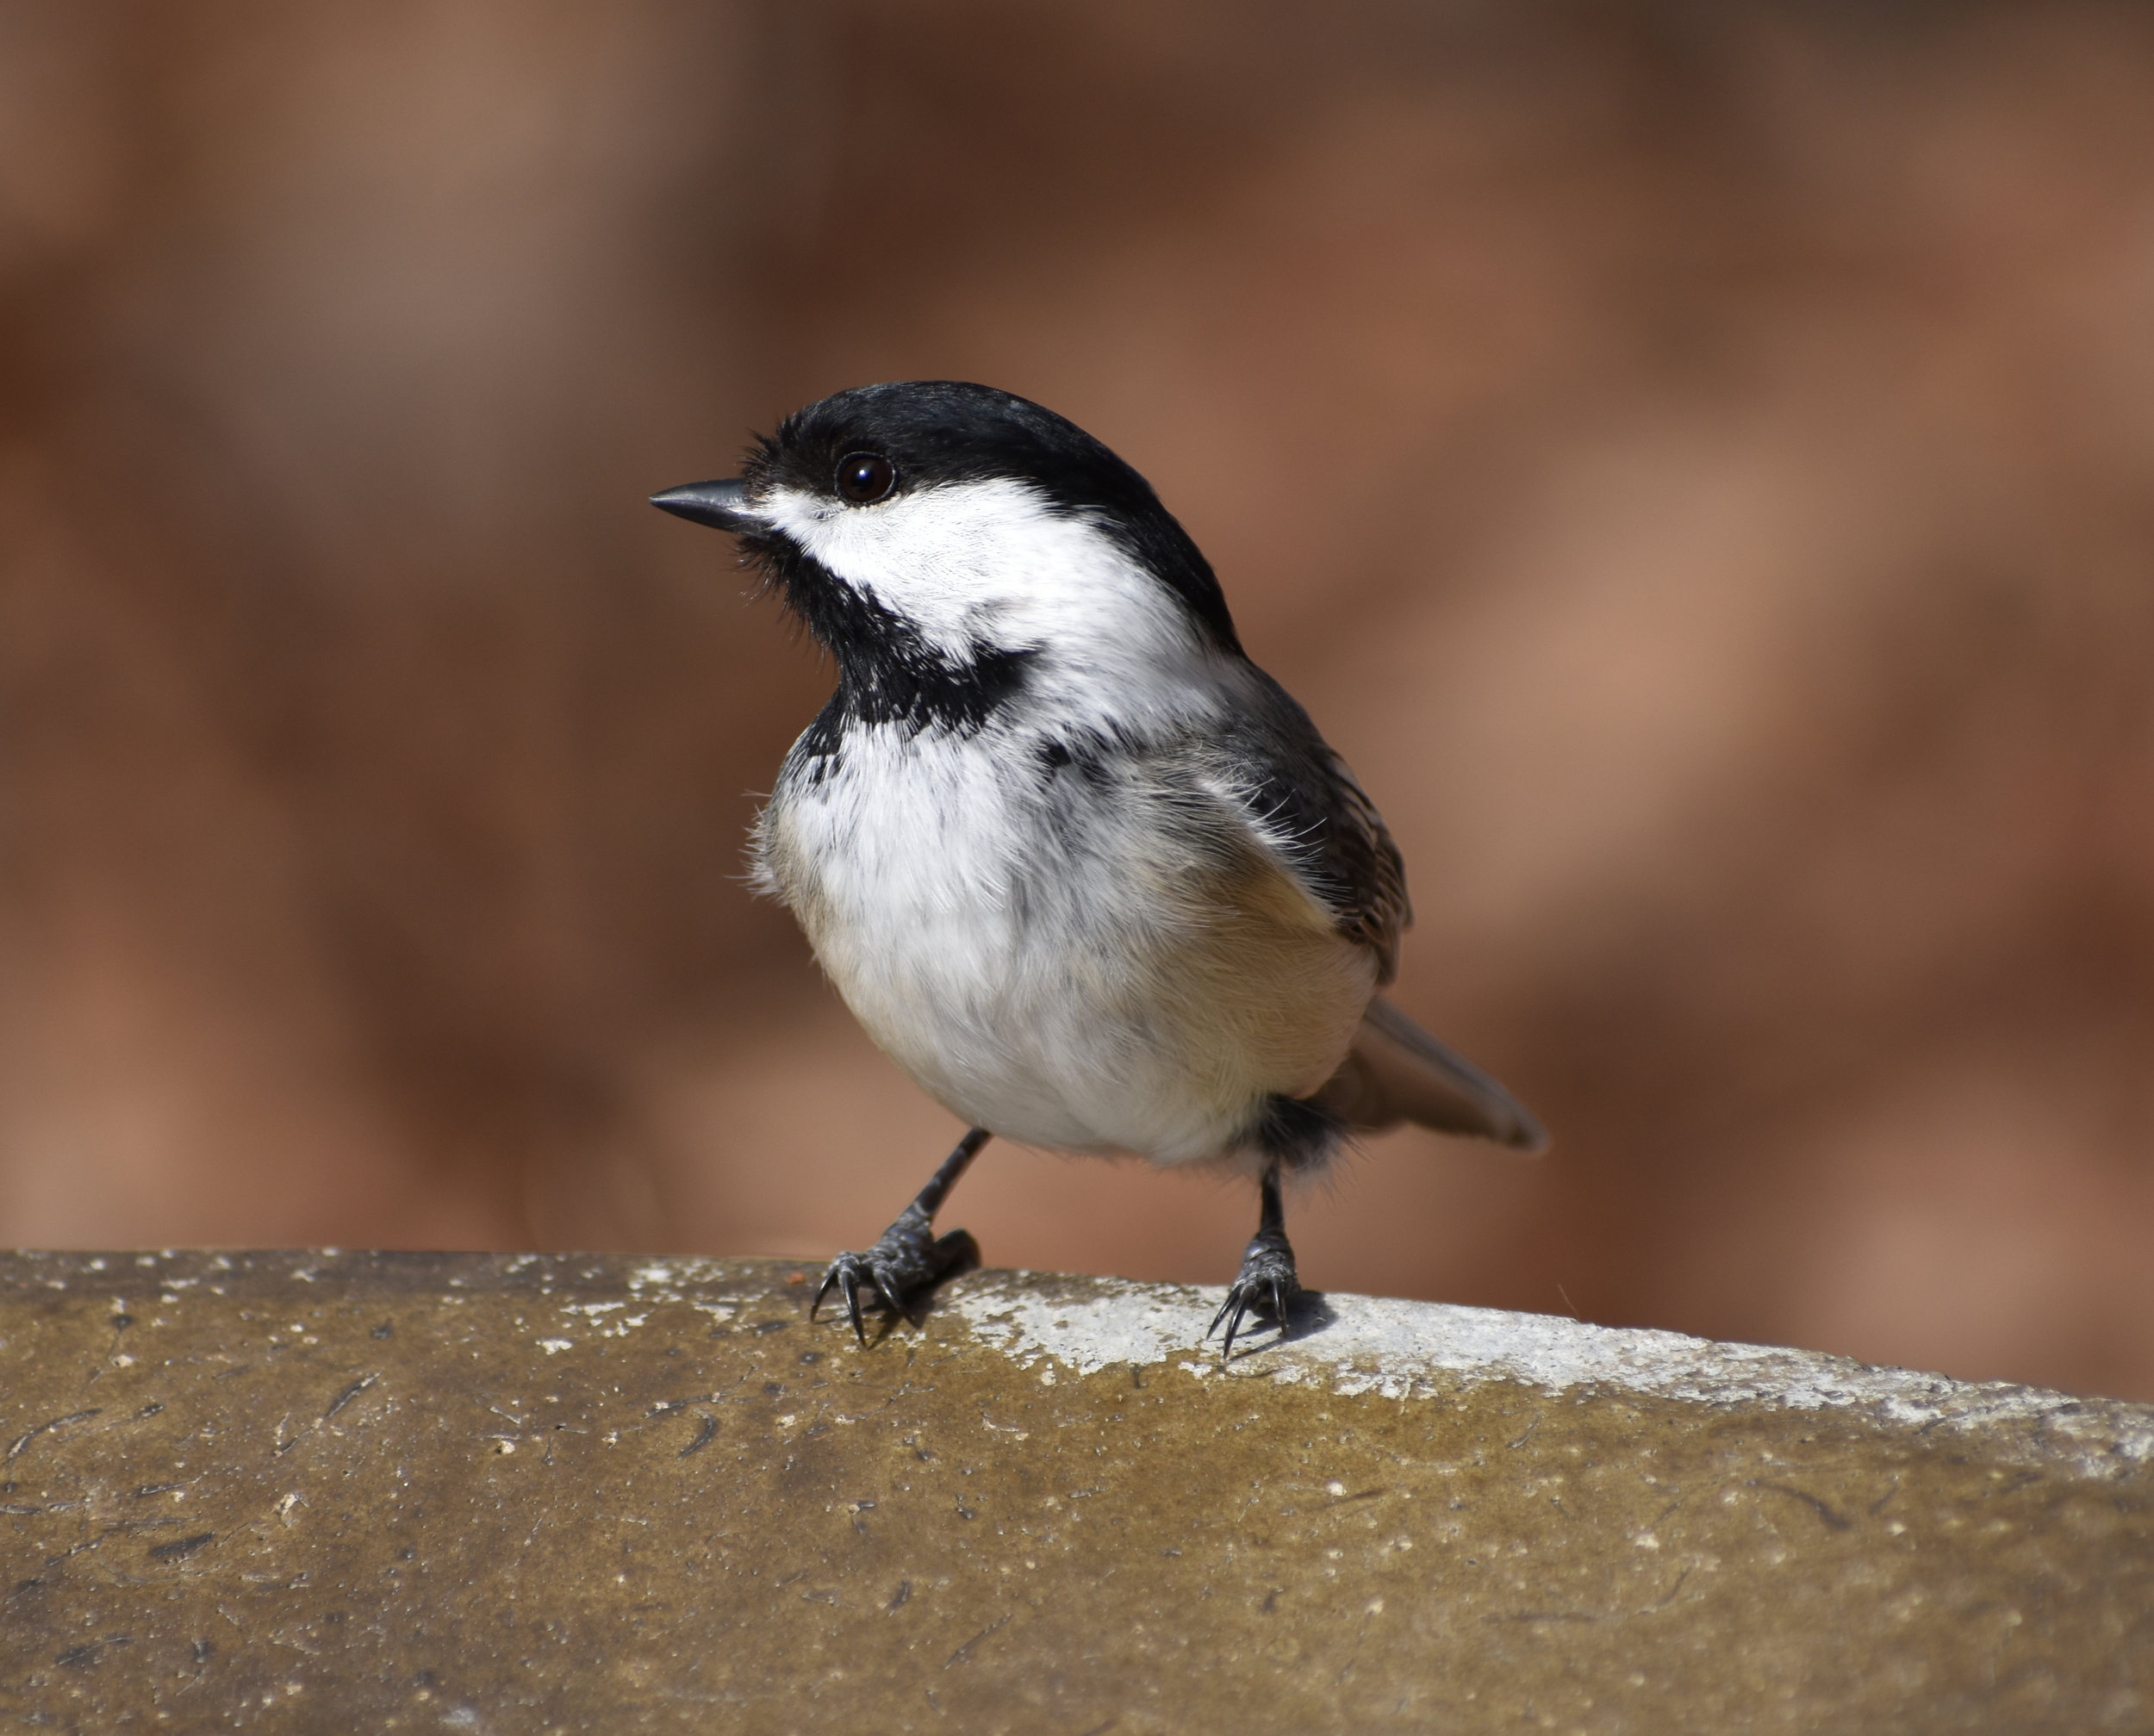 How to Attract Black-Capped Chickadee